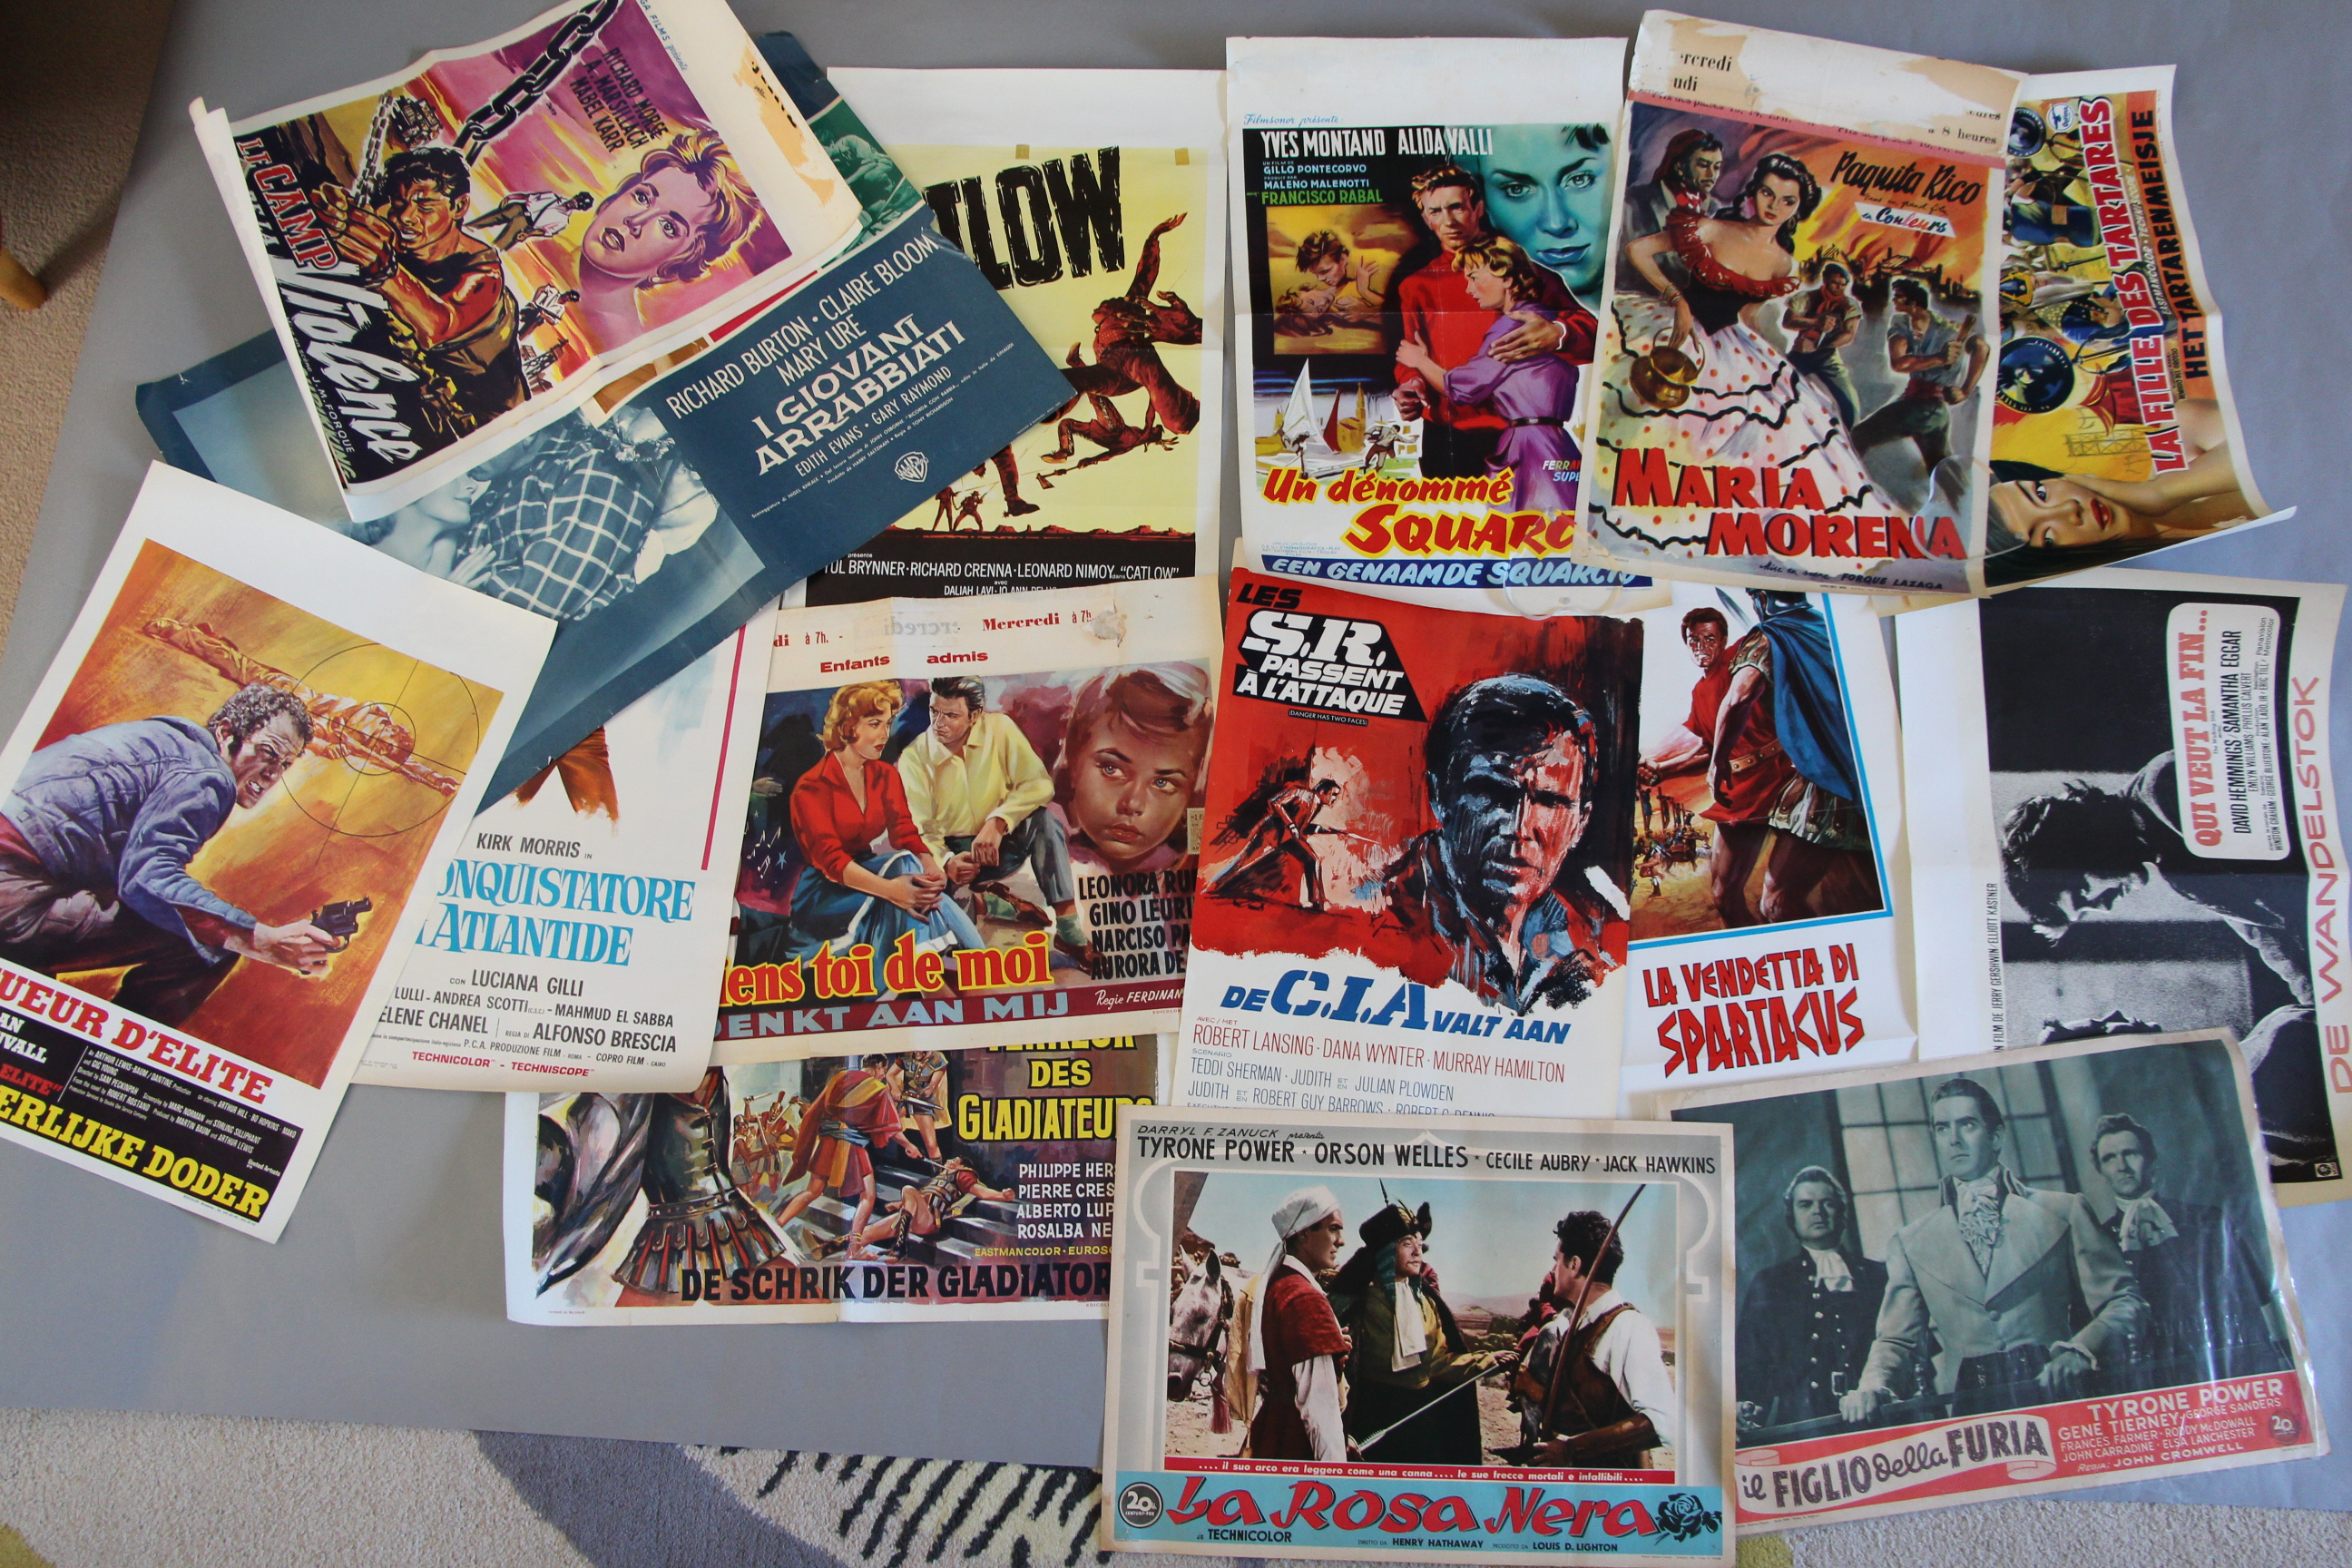 Lot 48A - 18 Smaller size film poster collection including Belgian posters - Catlow, CIA, The Walking Stick,